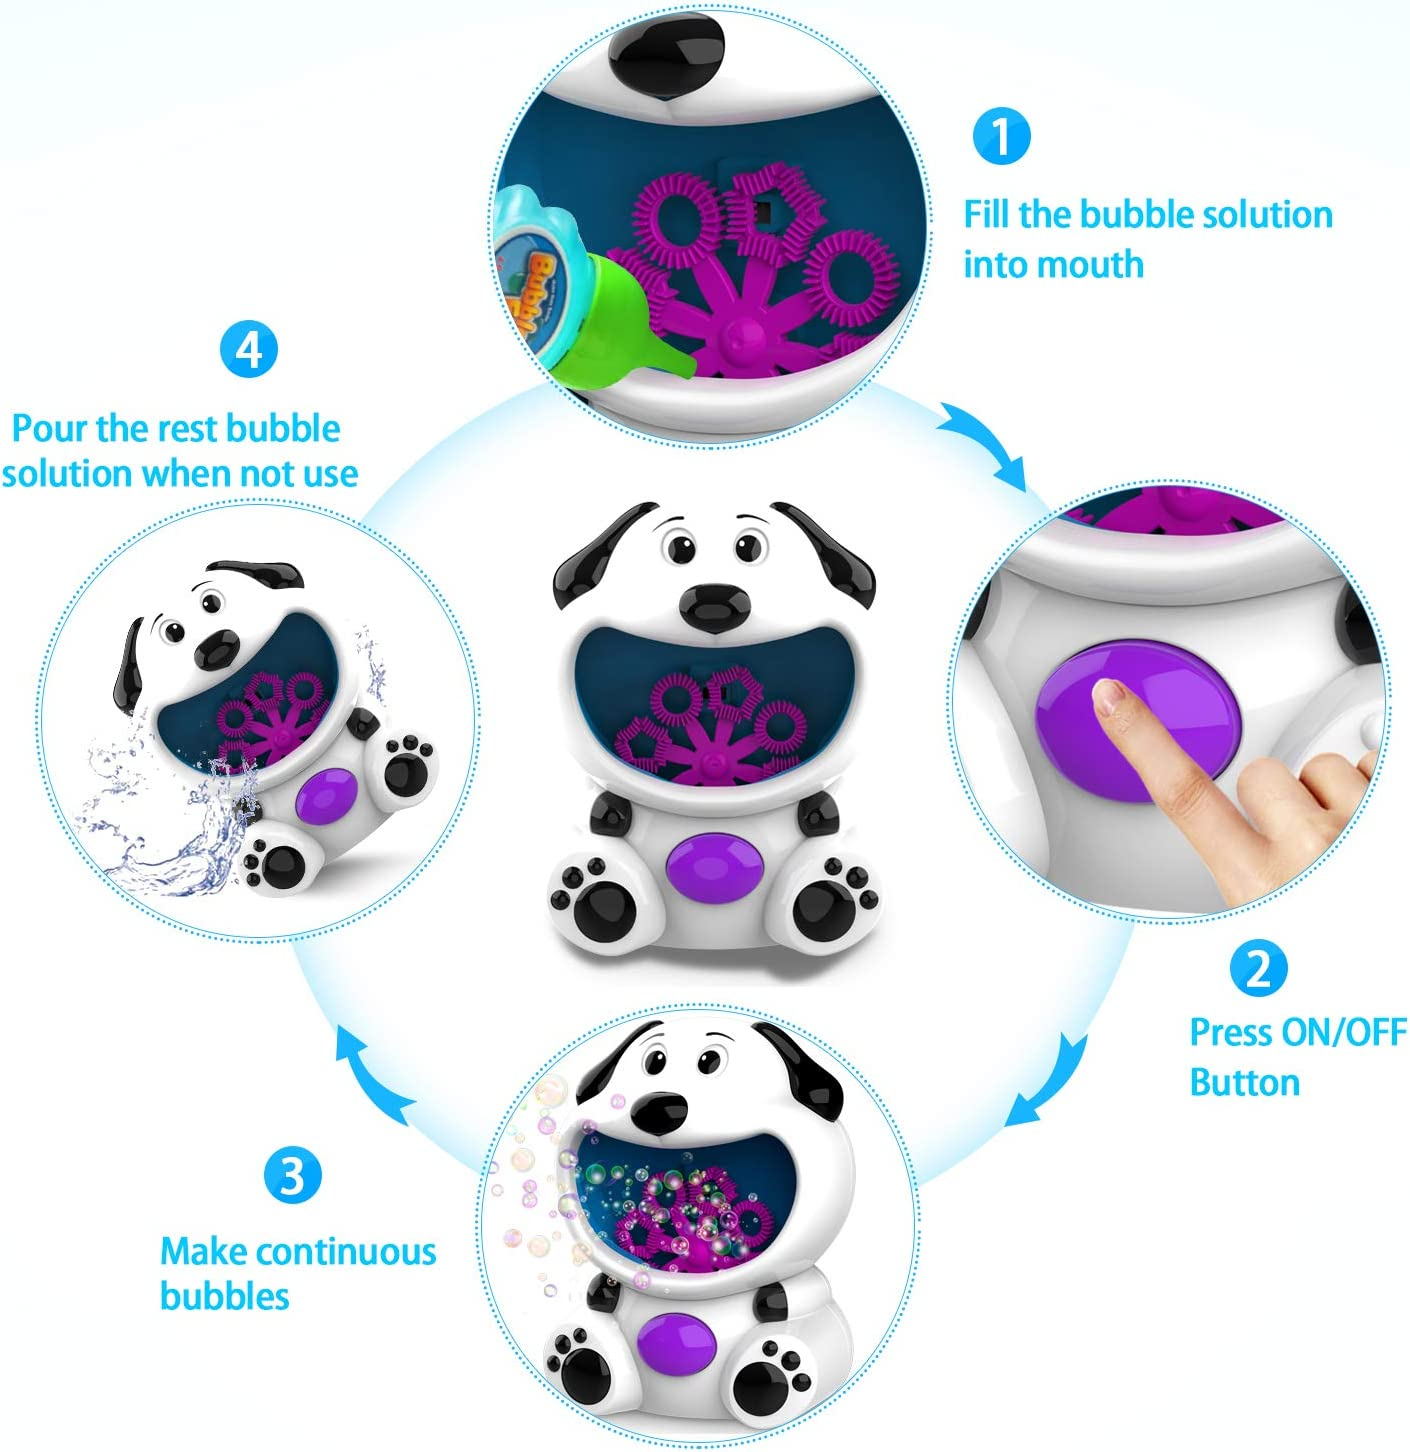 Bubble Machine for Kids Toddlers Boys Girls Baby Bath Toys Indoor Outdoor Automatic Bubble Maker Easy to Use 2 AA Batteries Needed Bubbles Per Minute WisToyz Bubble Machine Dog Bubble Blower 500